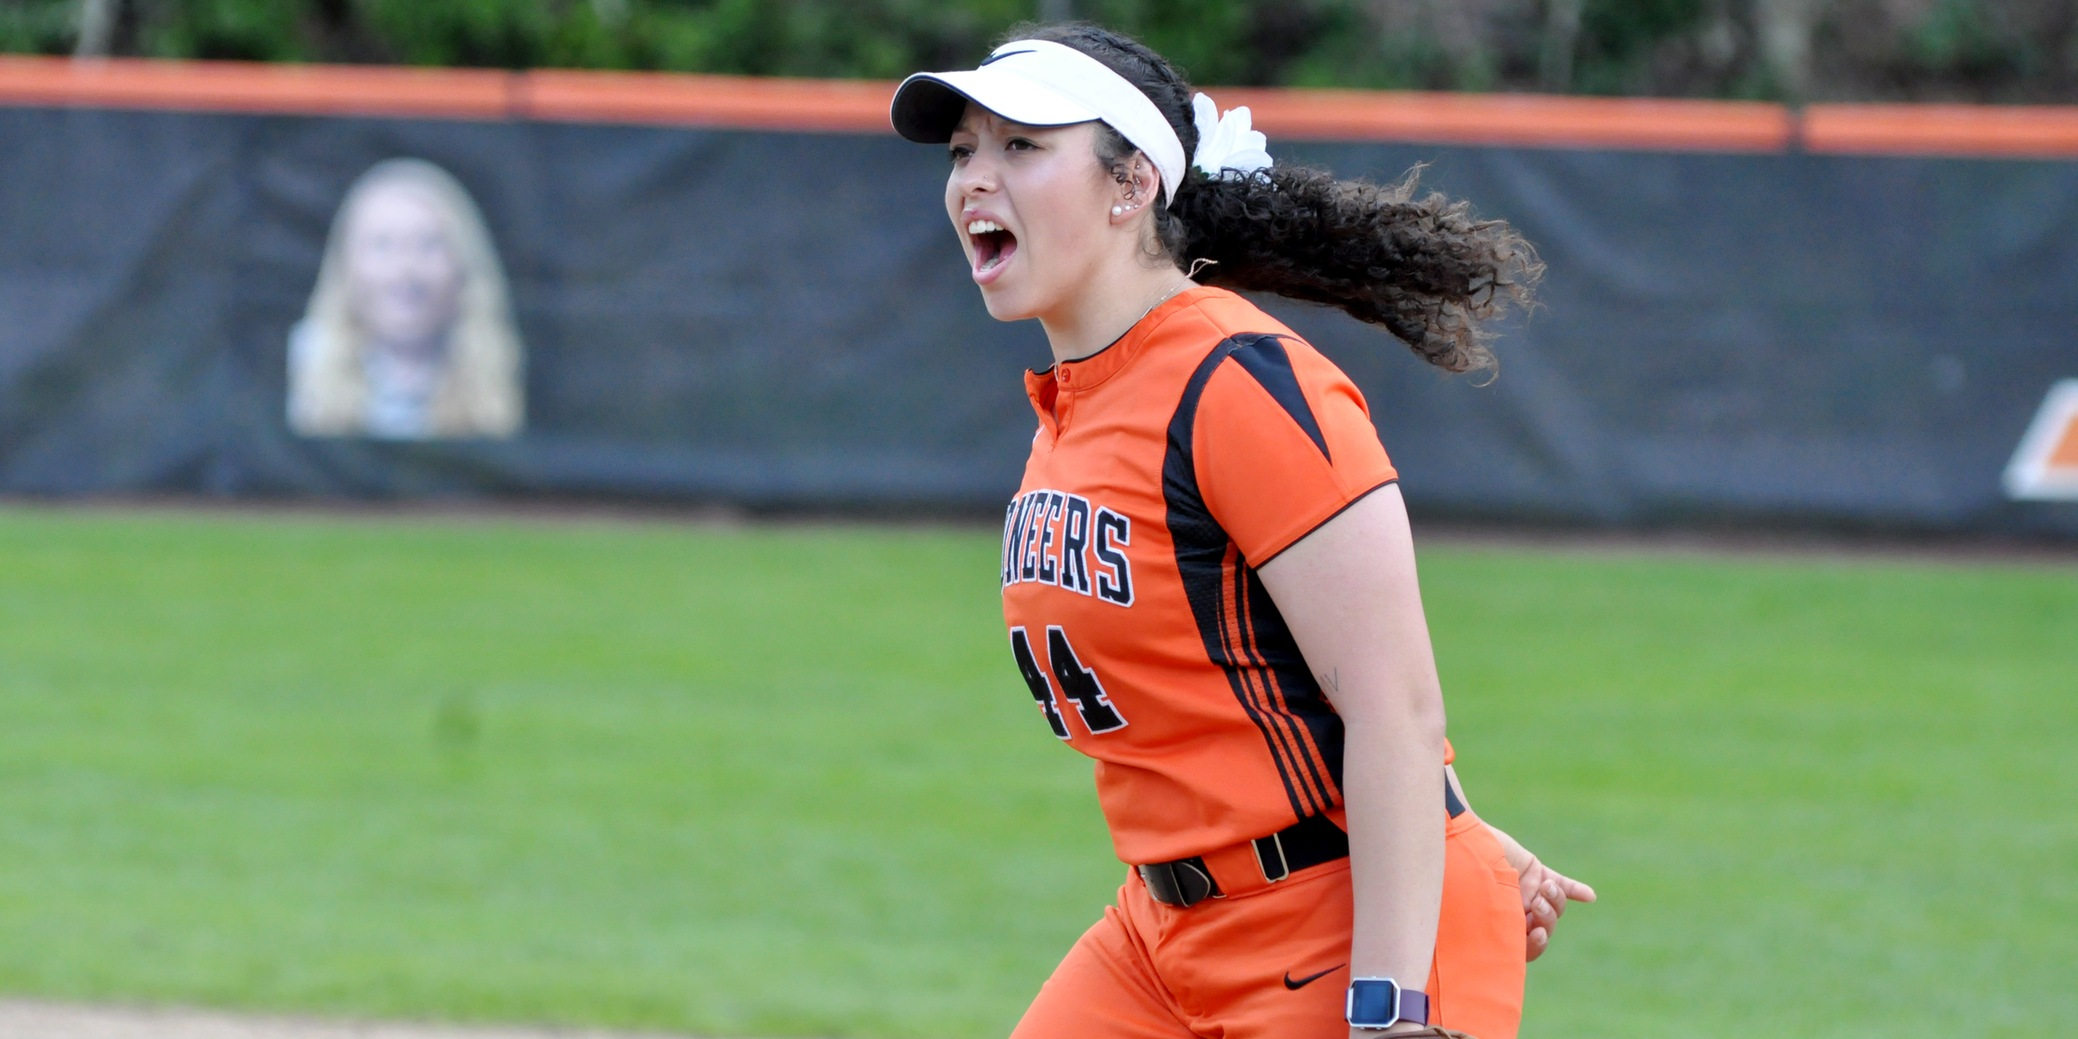 Lewis & Clark totals 16 hits, 10 runs in season finale to split pair with George Fox